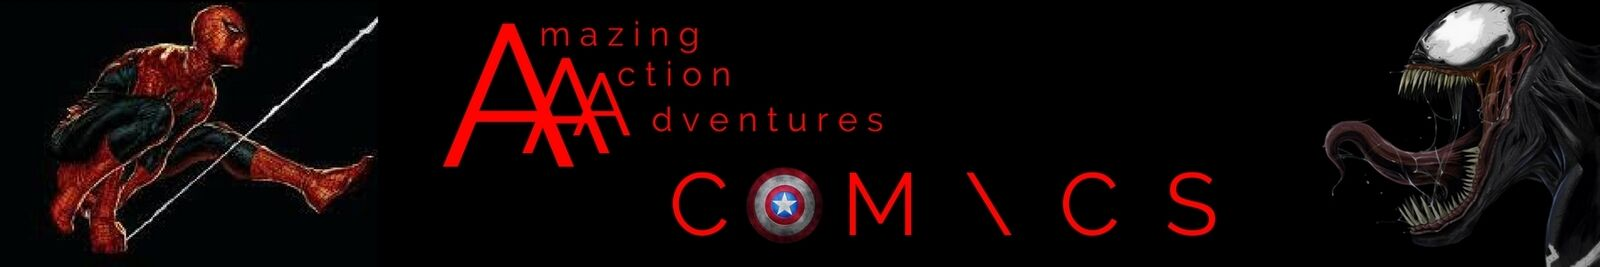 Amazing Action & Adventure Comics